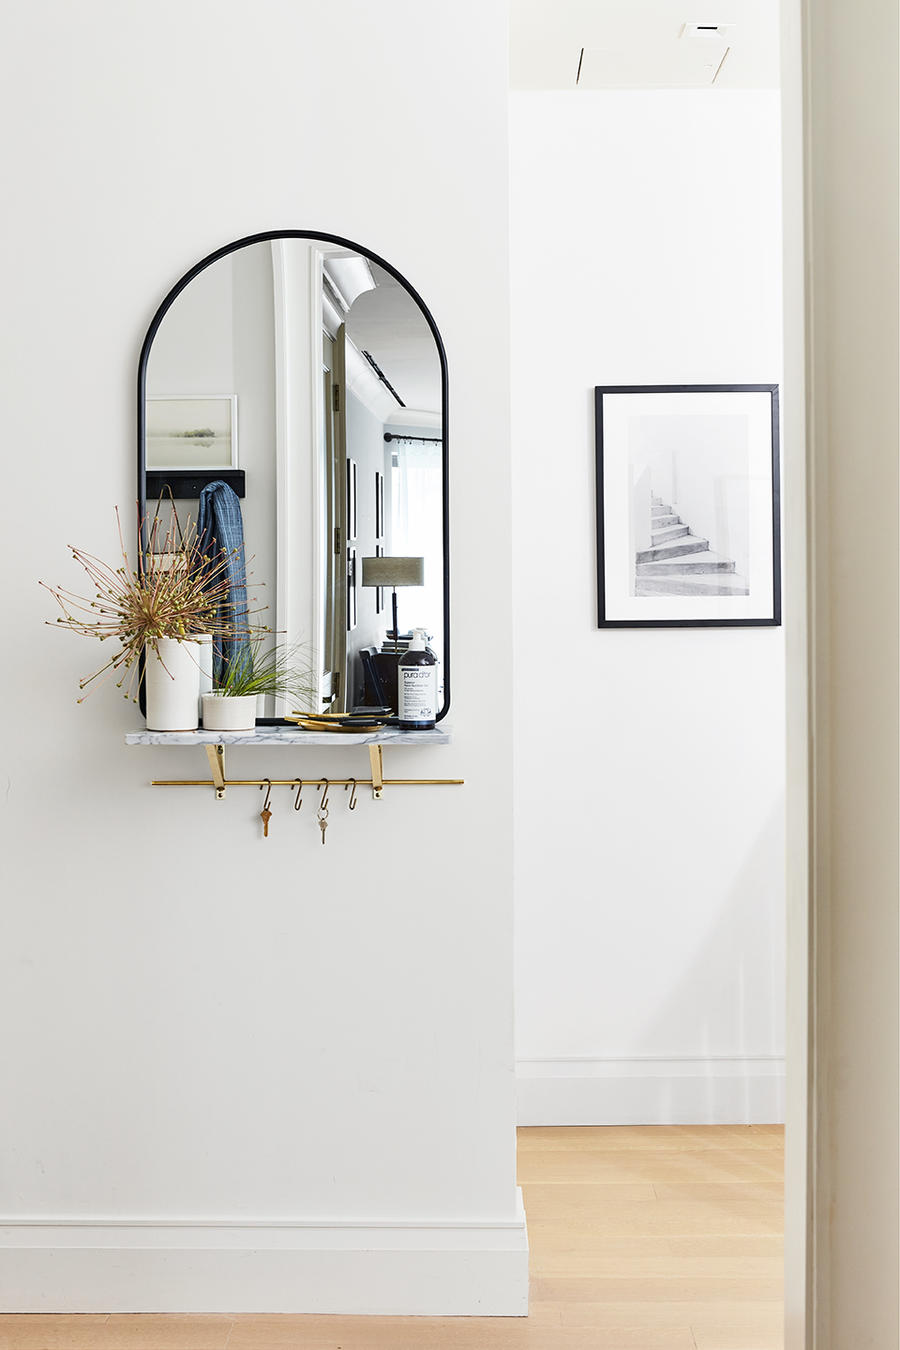 In the era of COVID, the entryway in the Real Simple House a bottle of hand sanitizer perched under the mirror.